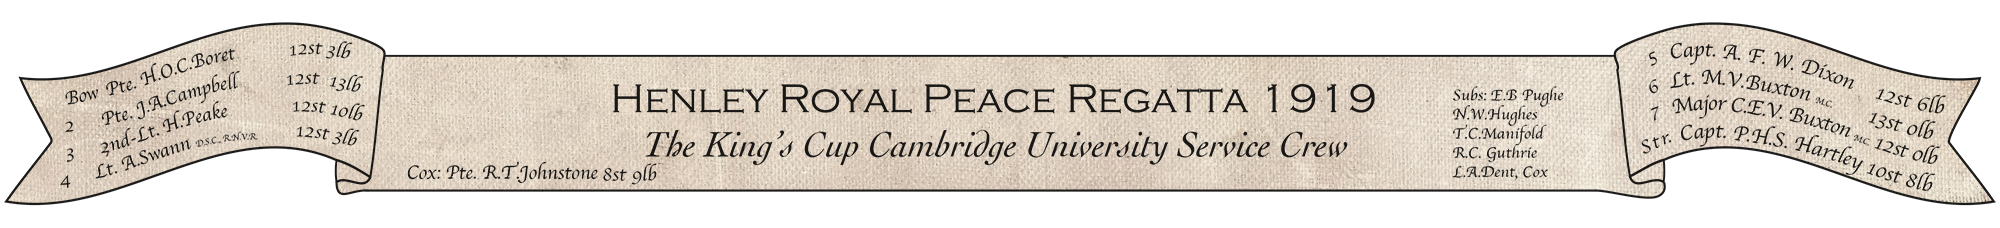 Cambridge-University-Service-Crew-1919.png